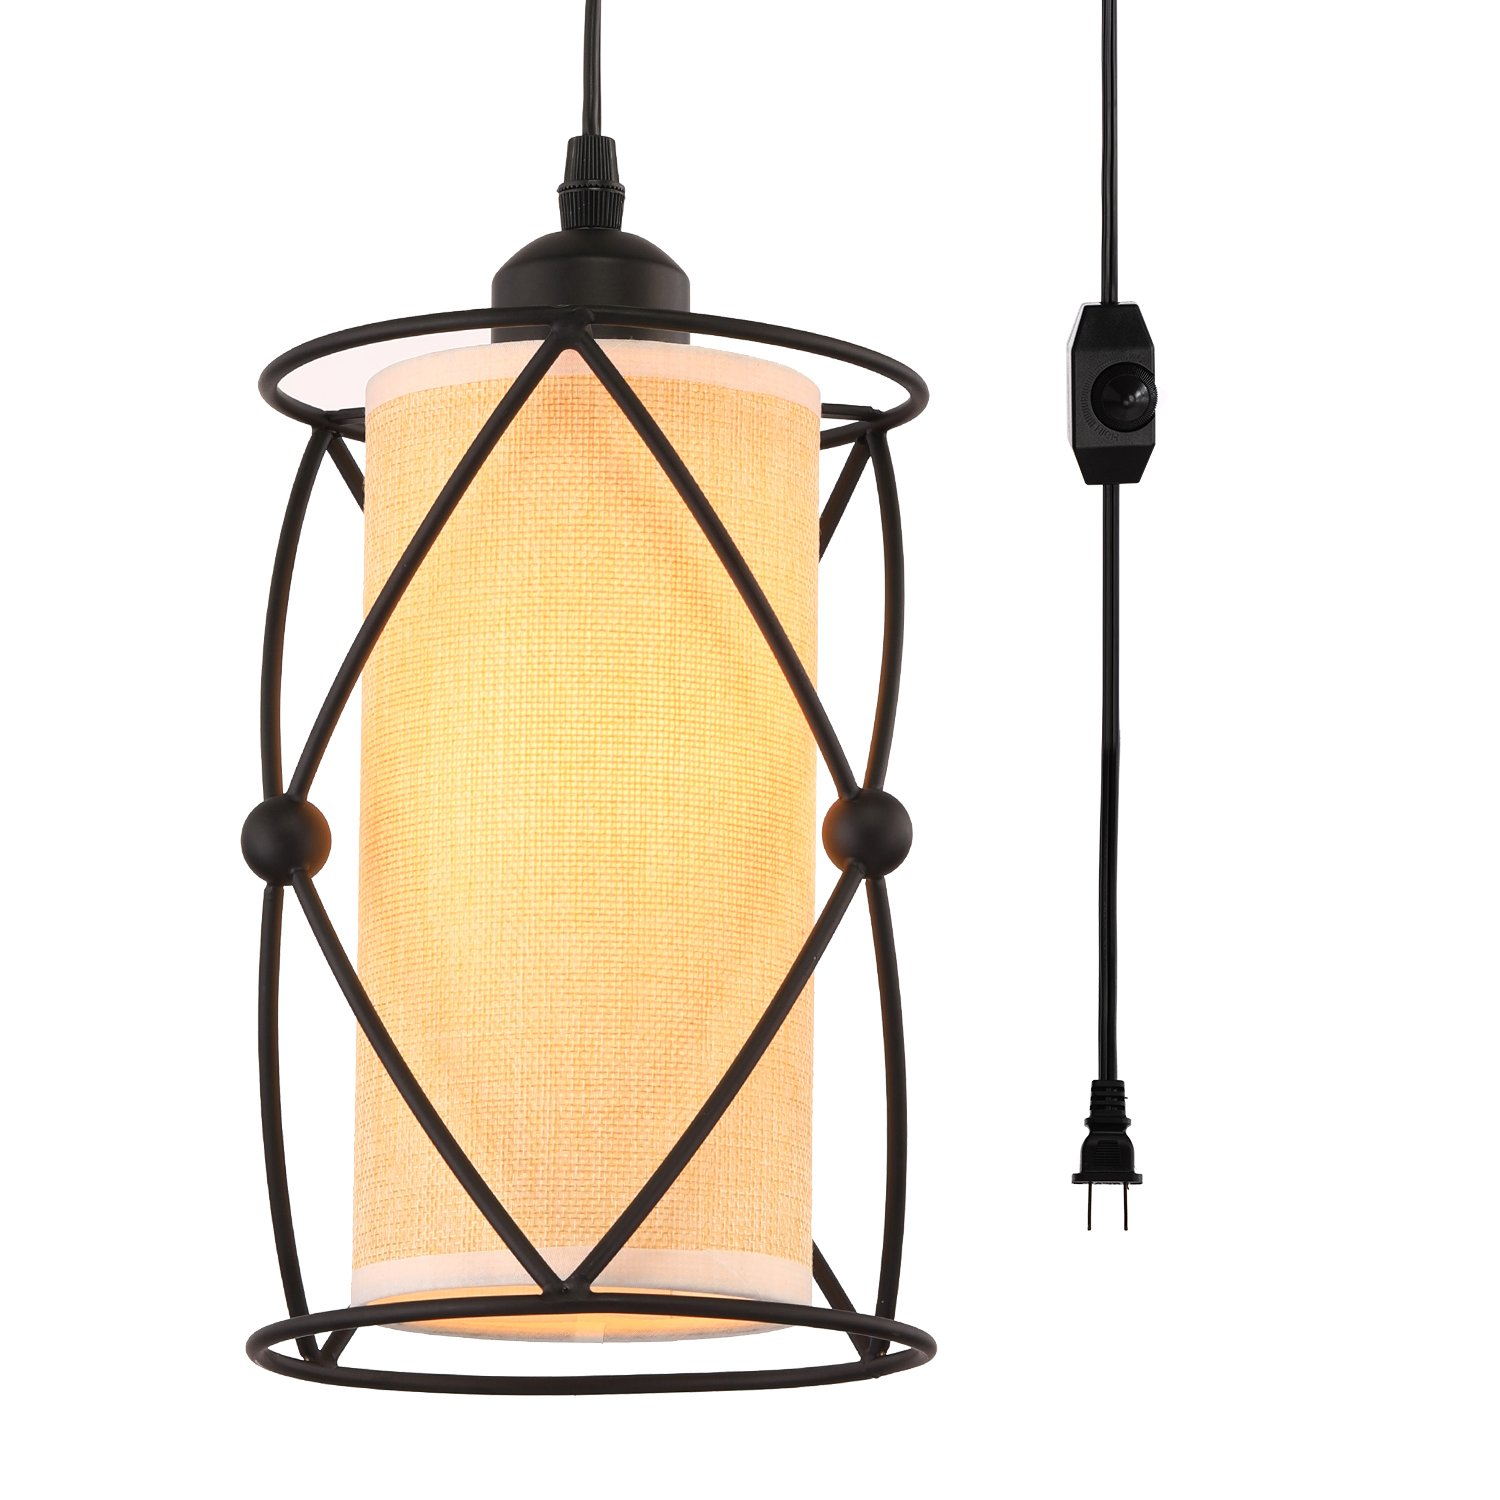 Creatgeek Plug-In Modern Industrial Pendant Light with Linen Drum Lamp Shade, 15' Hanging Cord and In-Line On/Off Dimmer Switch,Black Finish Cylinder Style